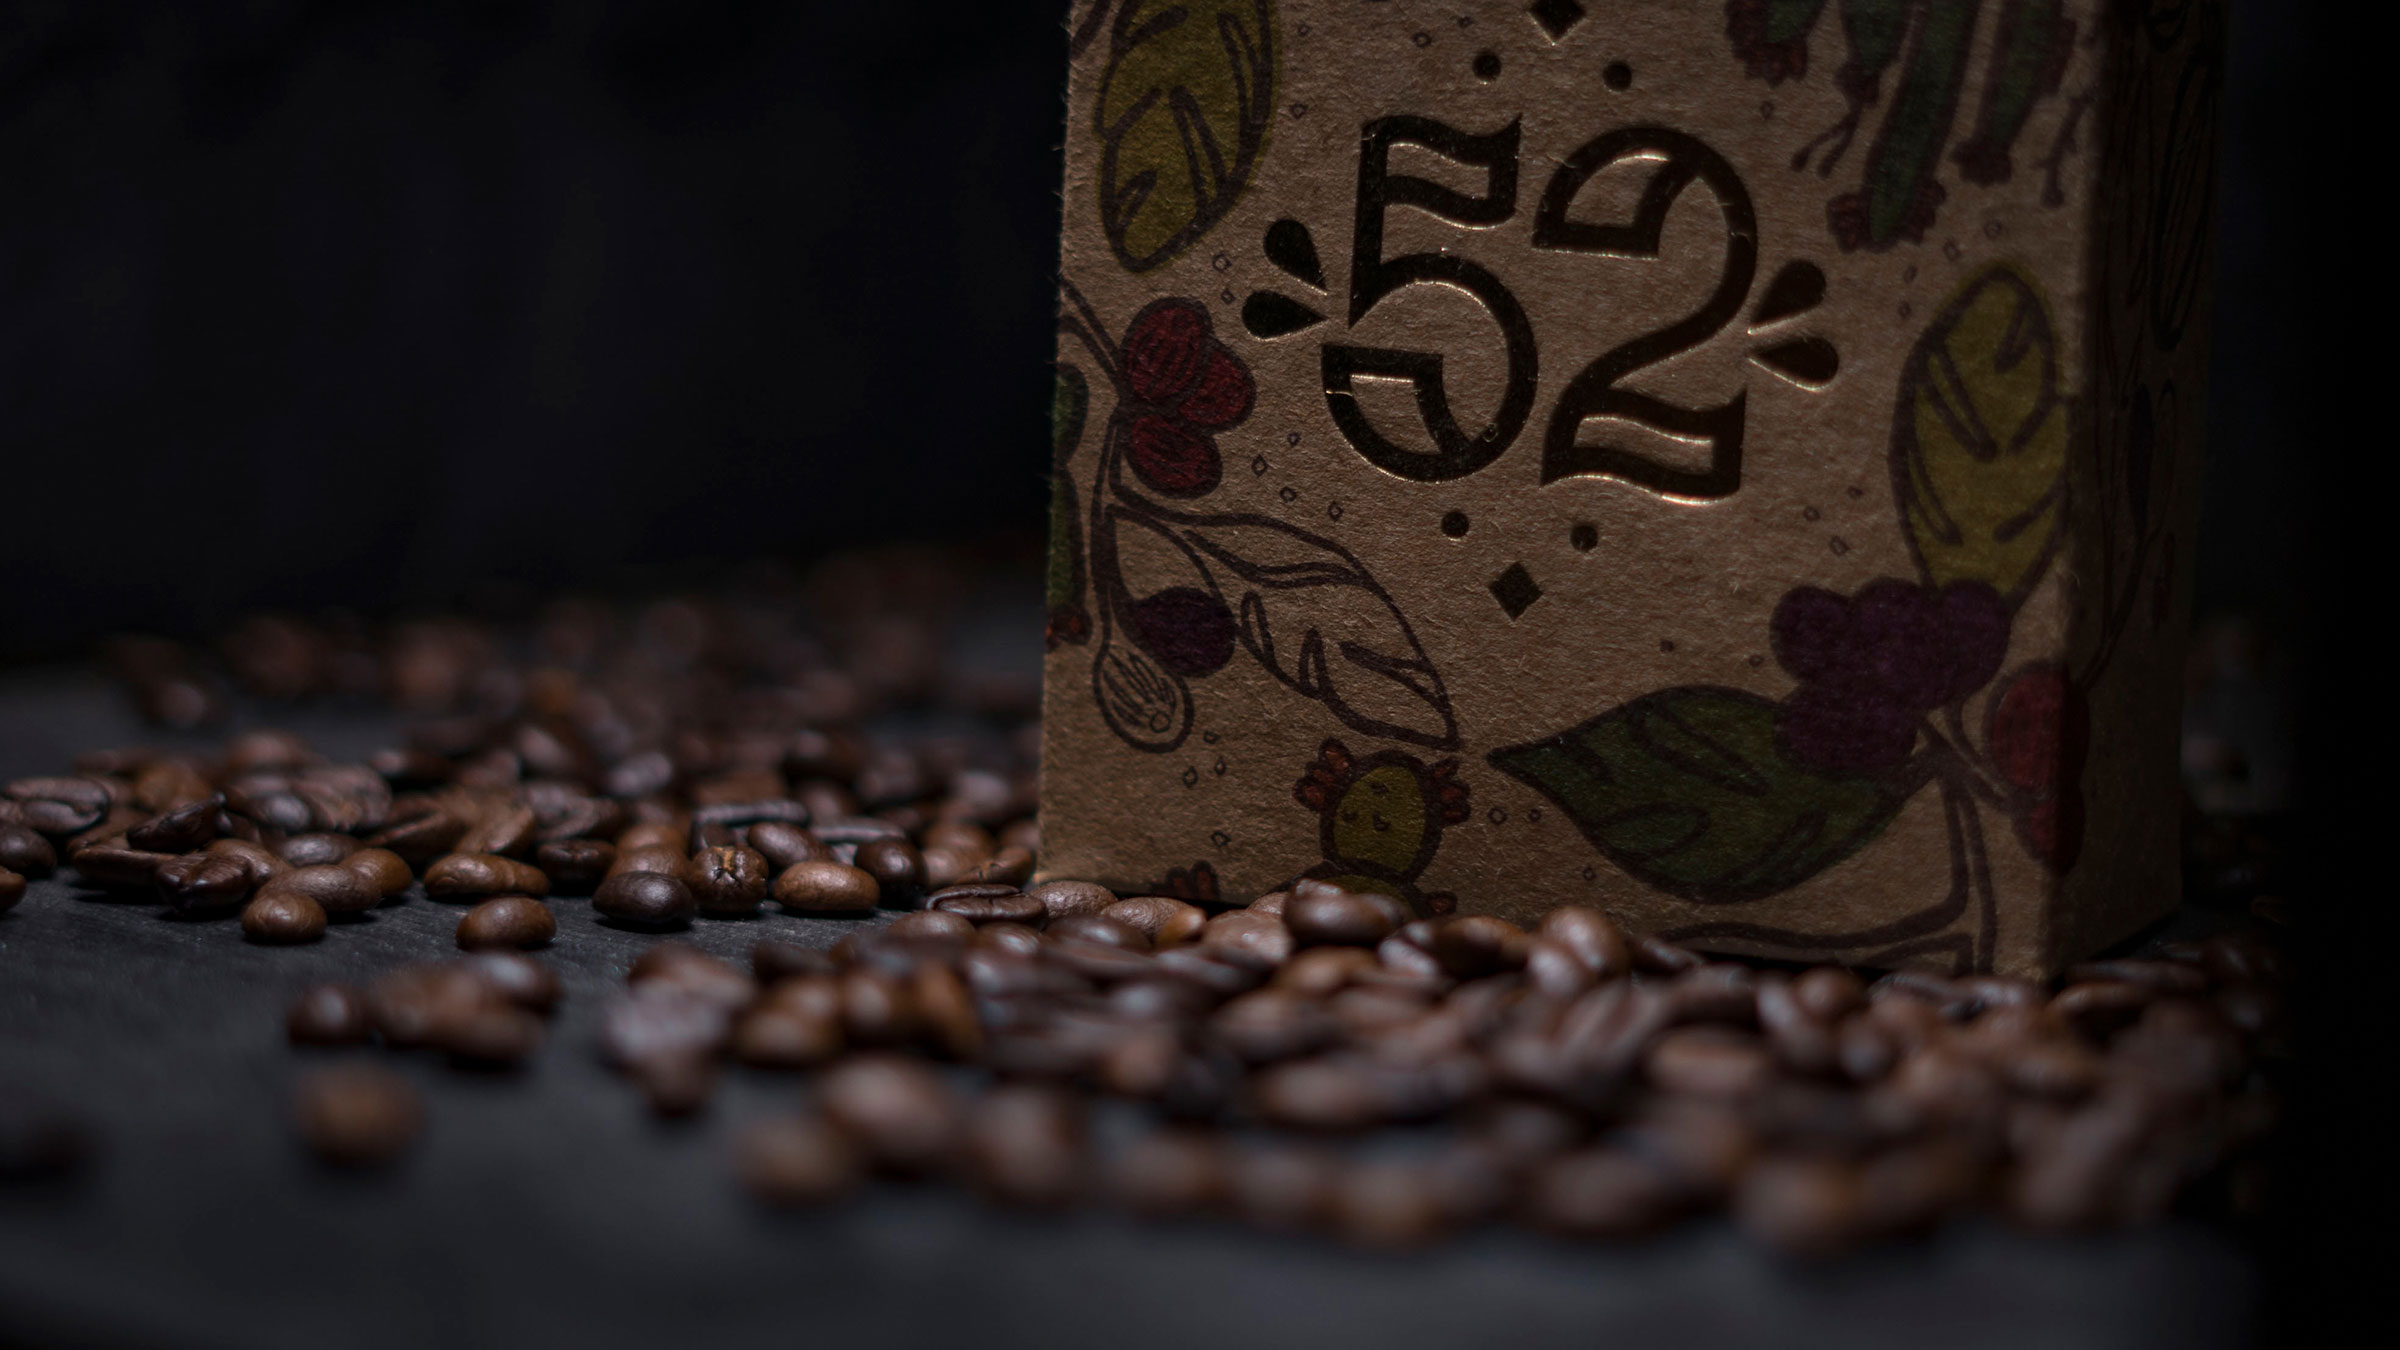 52 Box - Premium Craft Coffee / Café Artesanal Mexicano